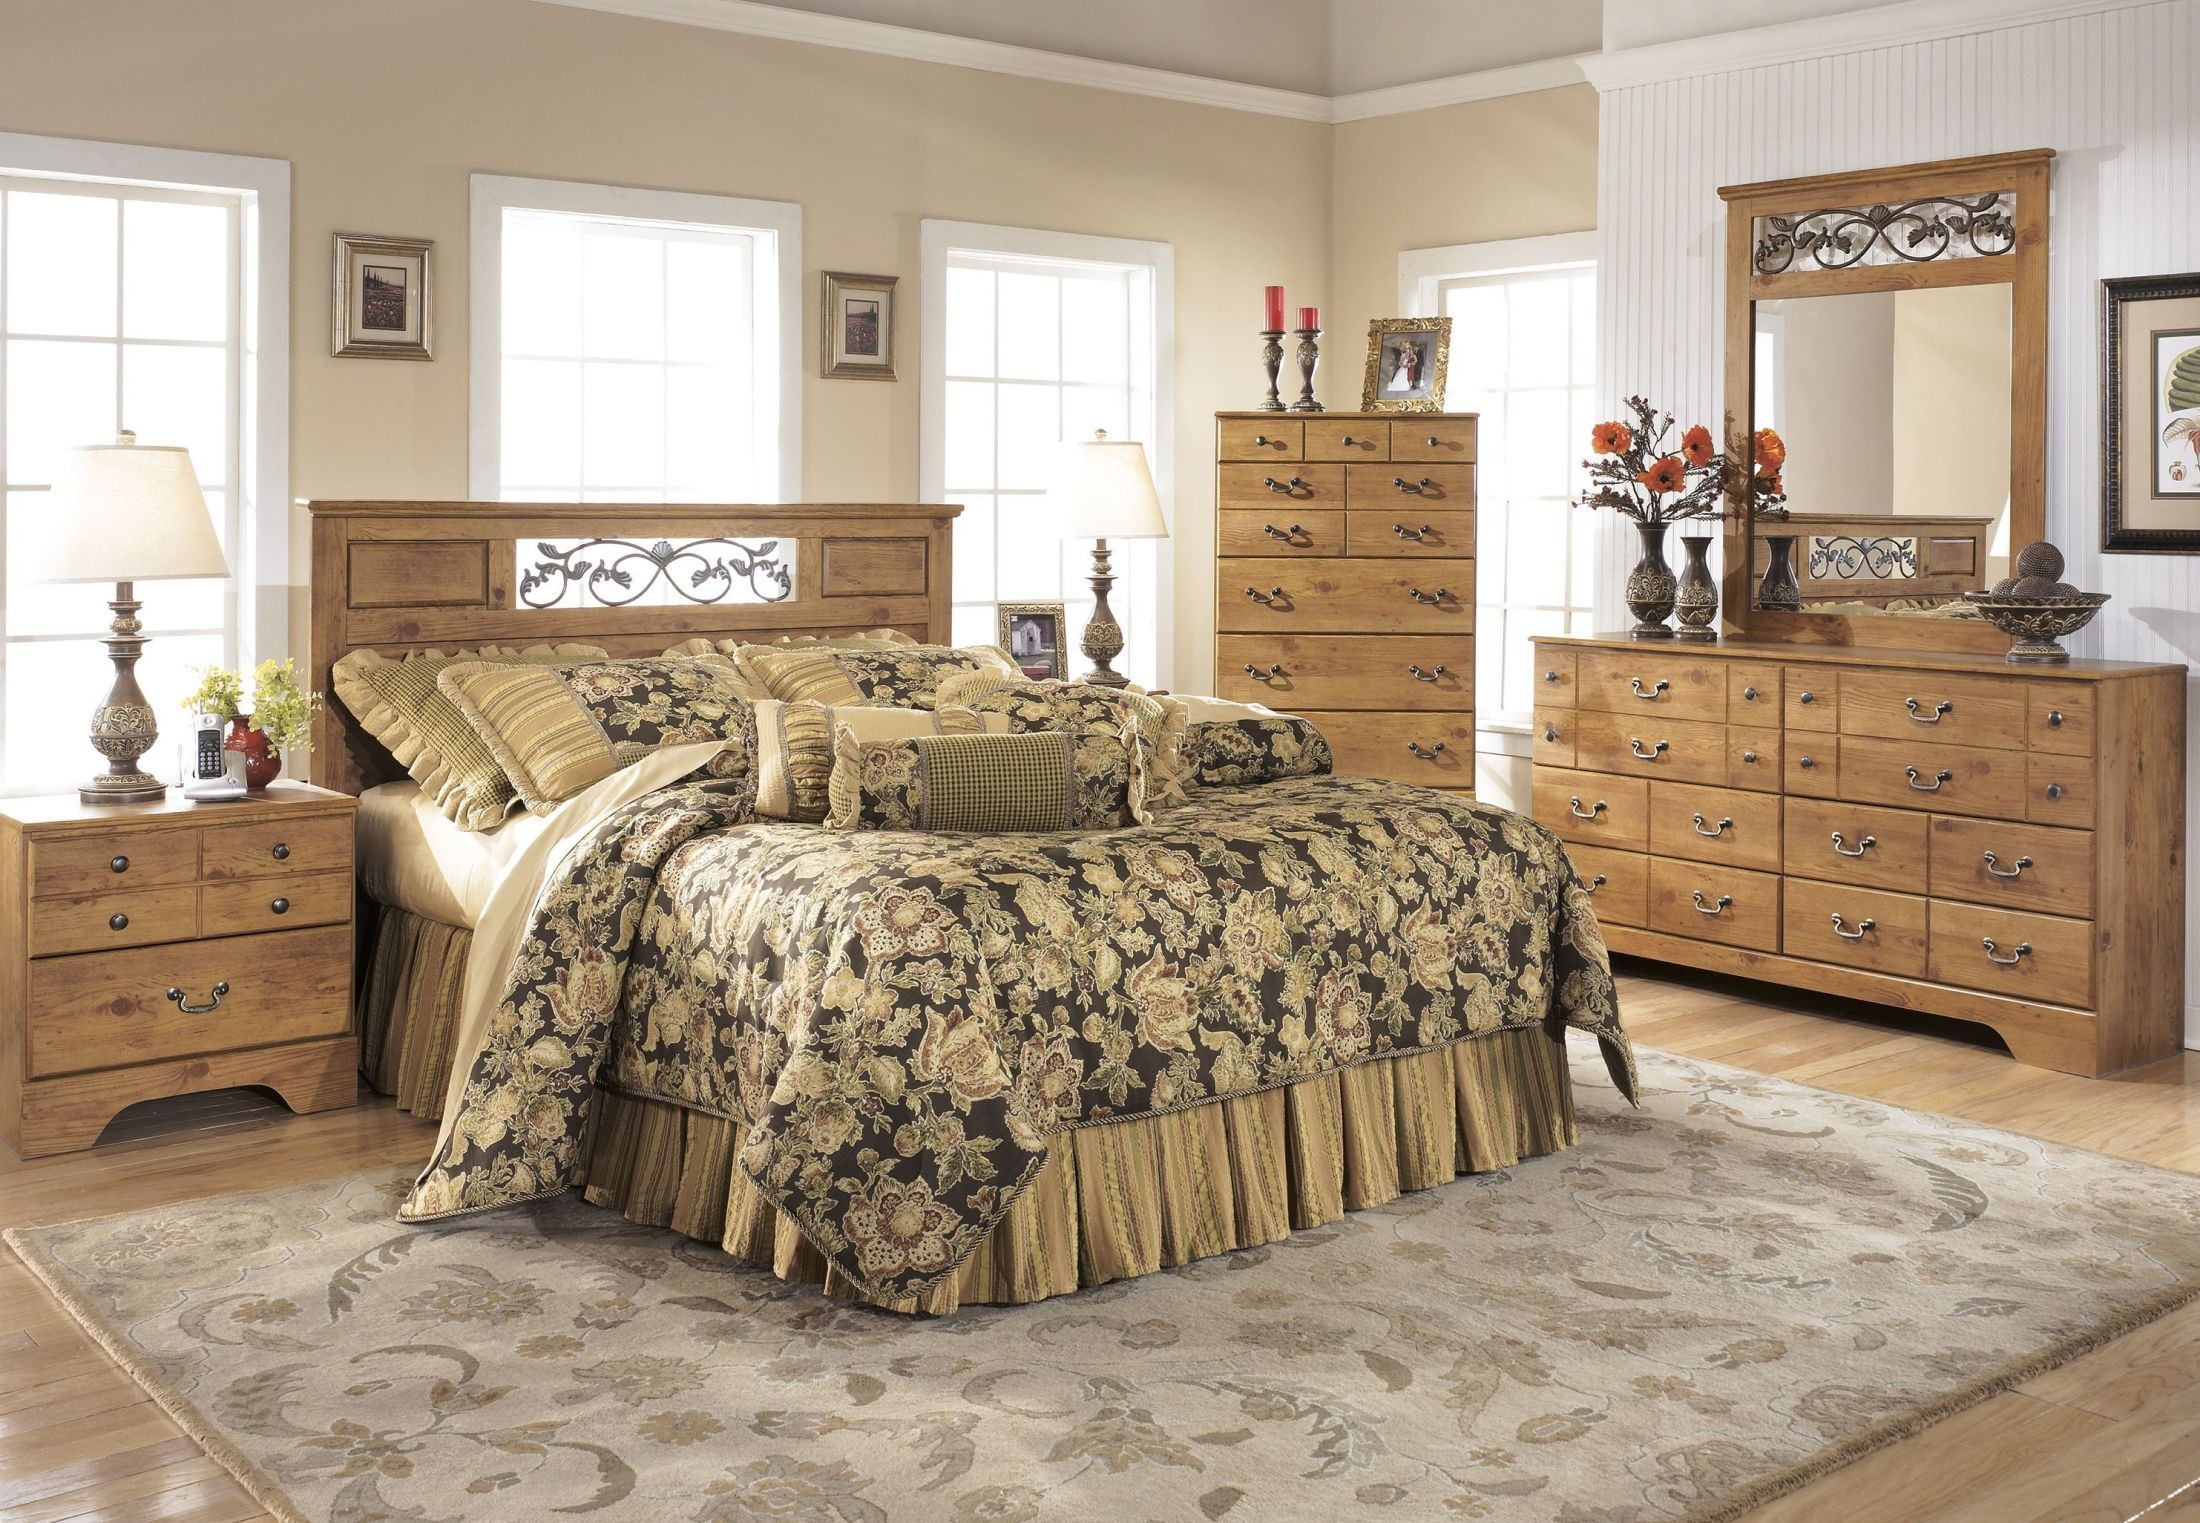 Bittersweet Panel Bedroom Set From Ashley B219 55 51 98 Coleman Furniture